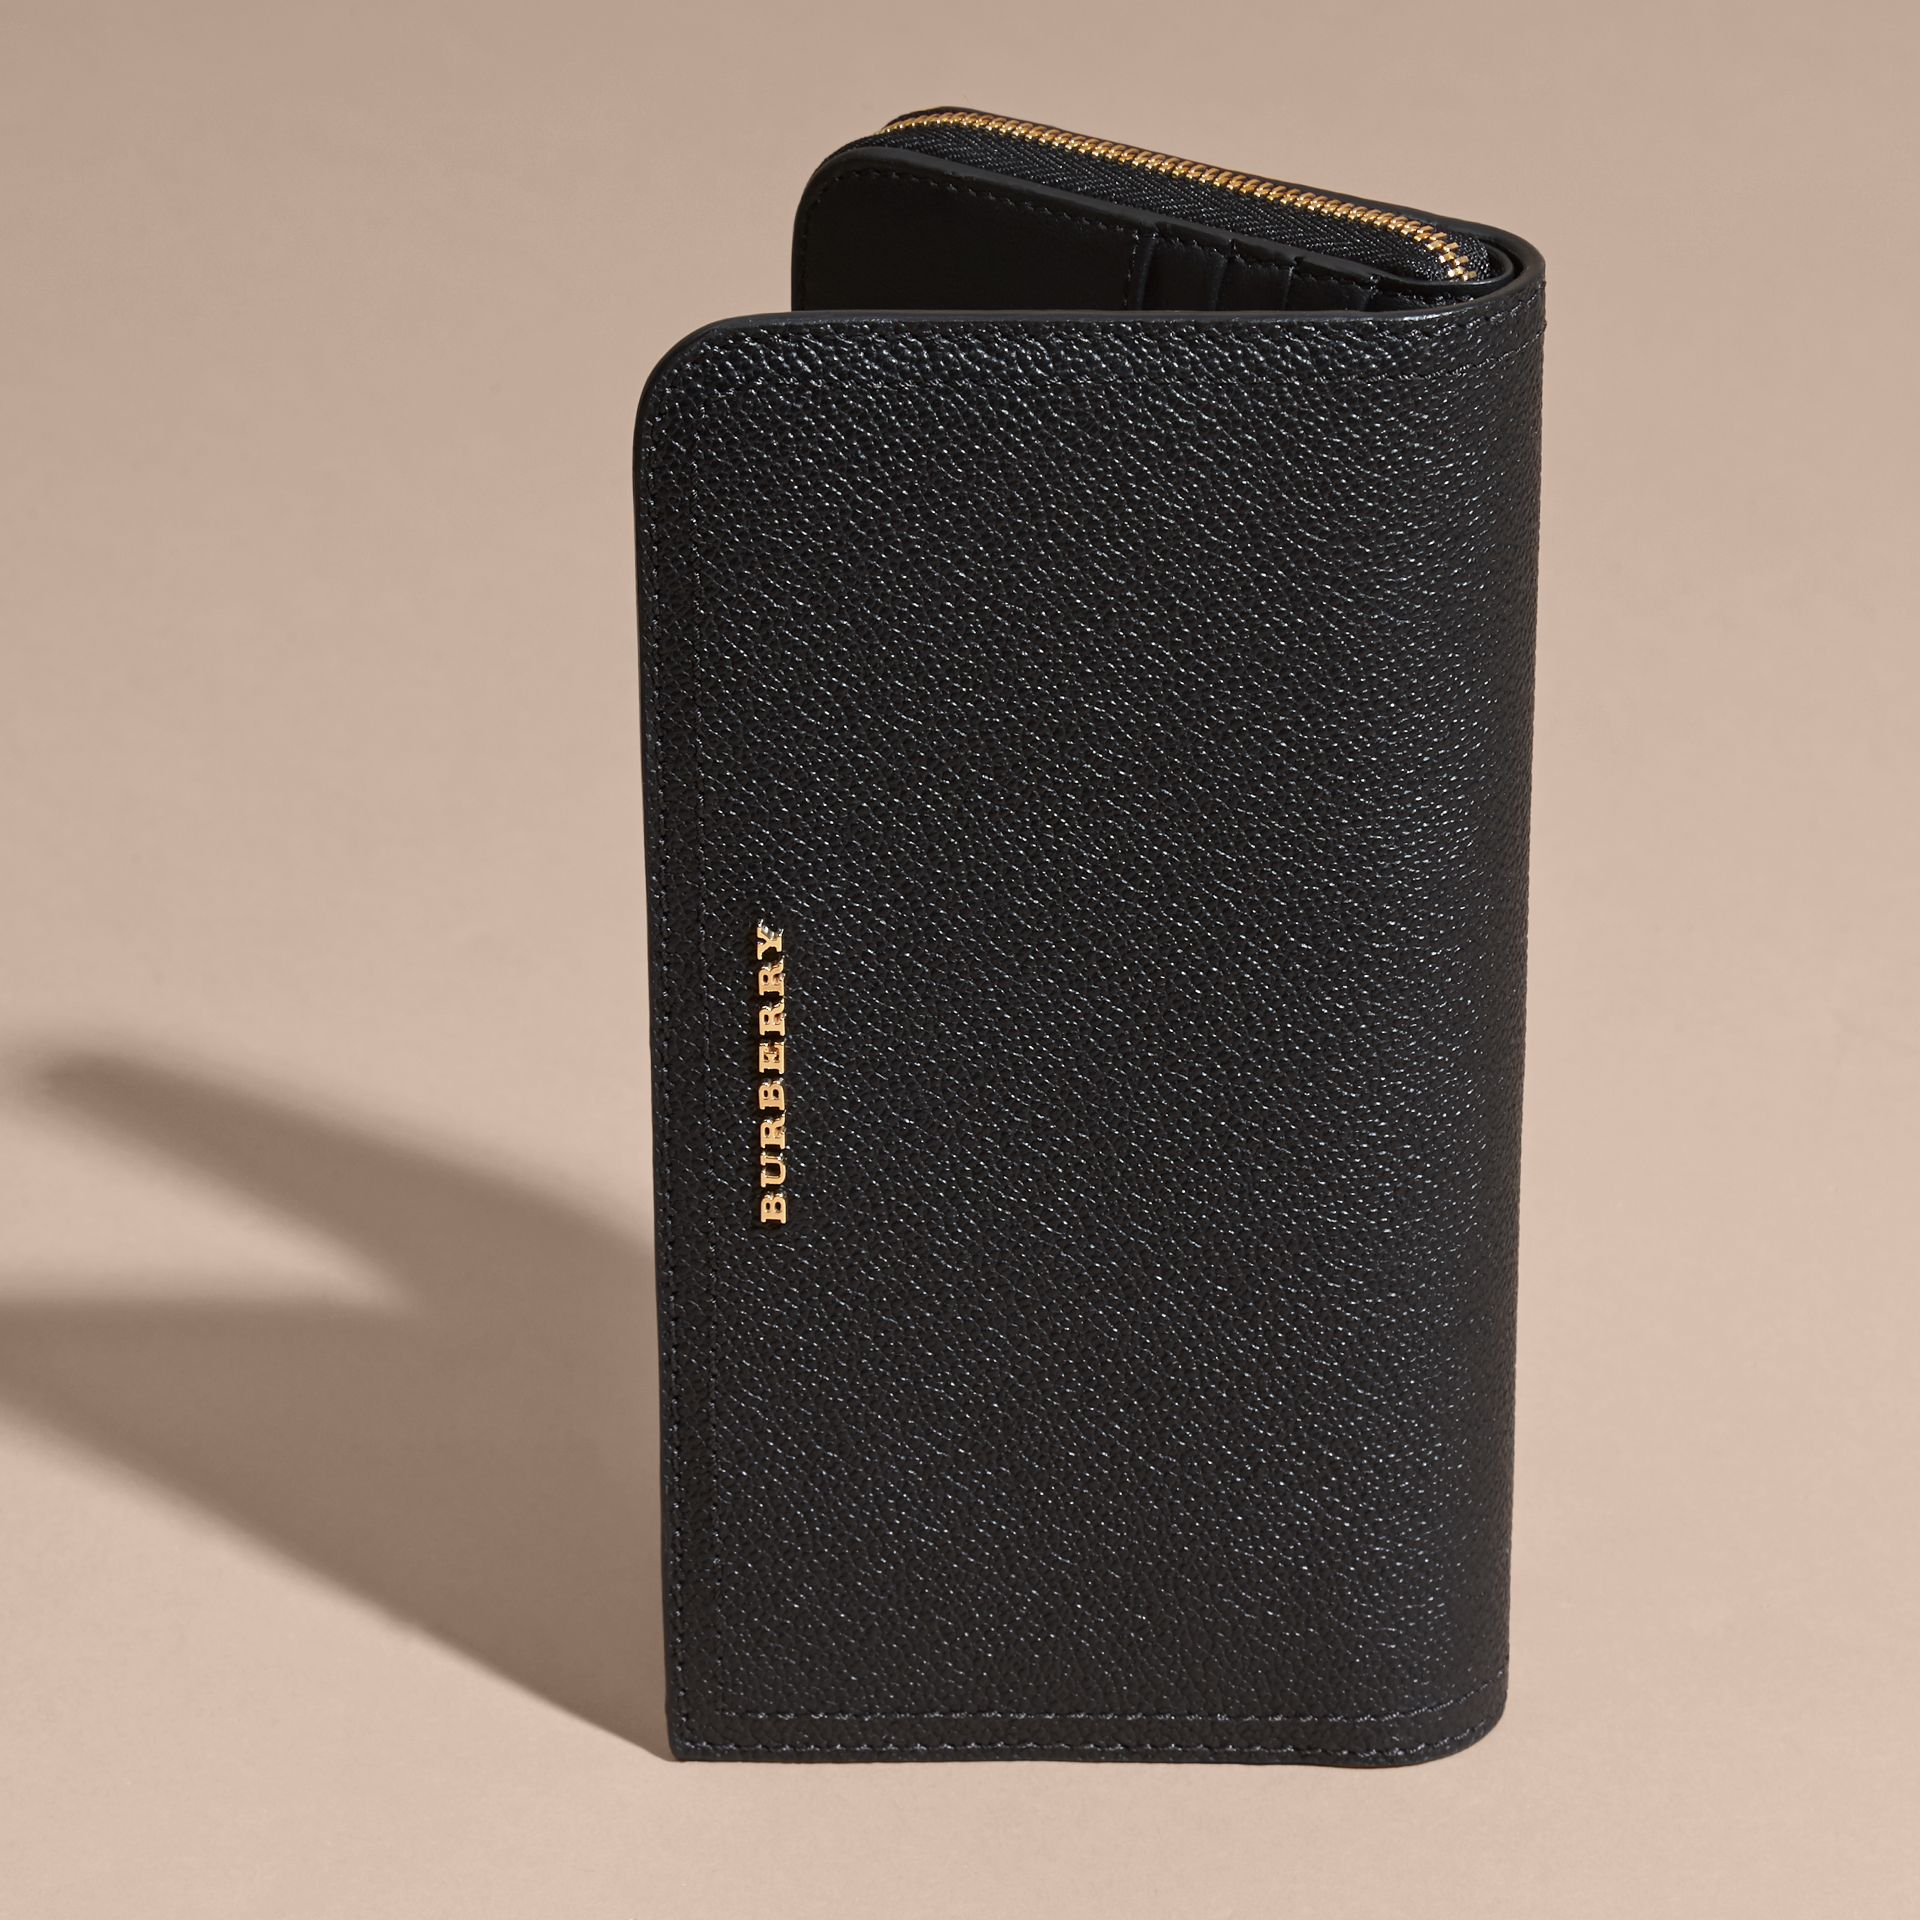 Grainy Leather Ziparound Wallet in Black - Women | Burberry - gallery image 6